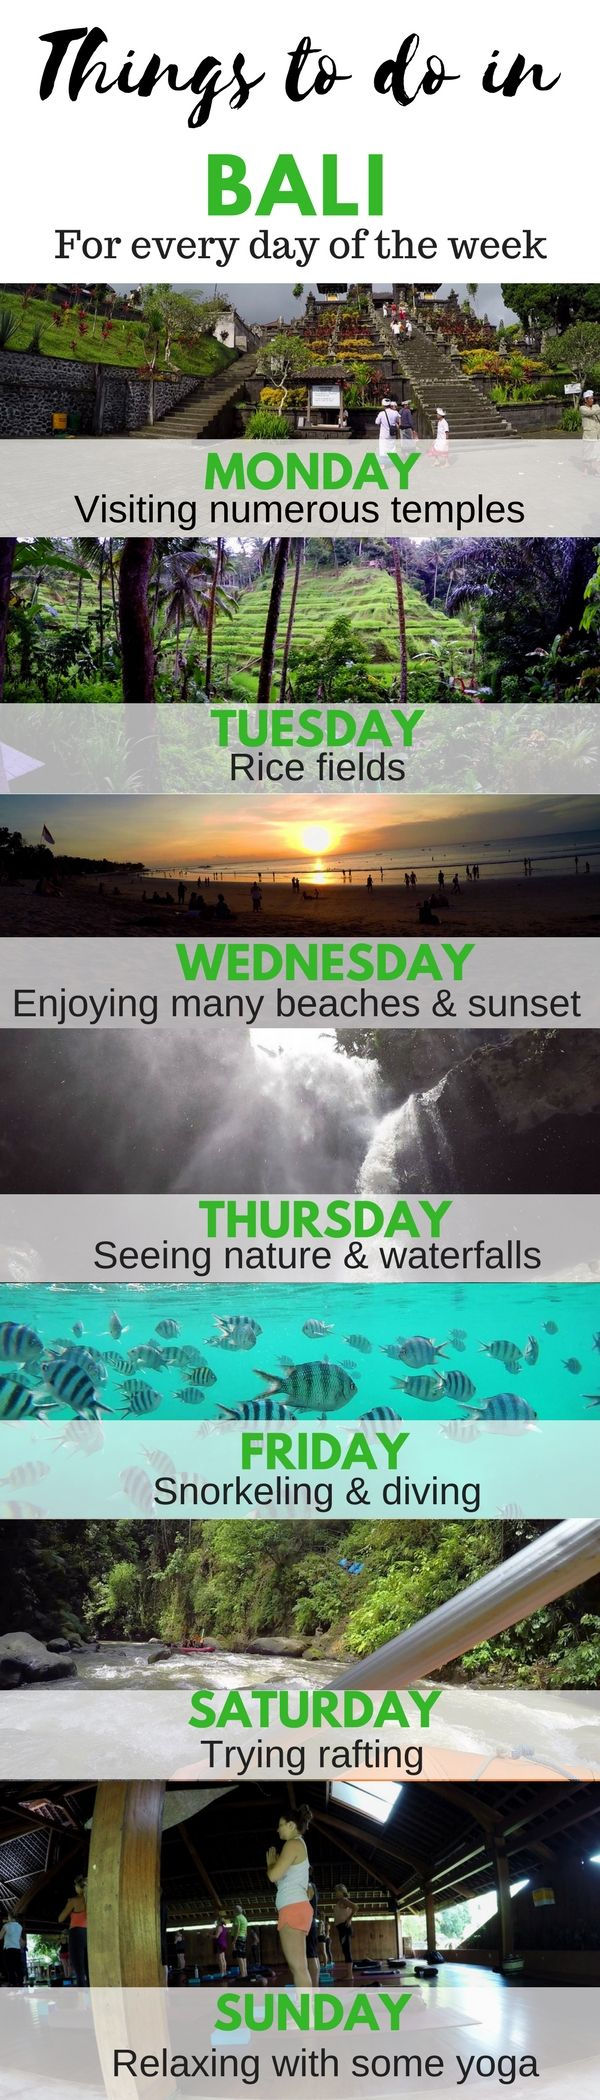 Things to do in Bali, What to do in Bali, Bali Travel, Bali Tips, Bali Vacation